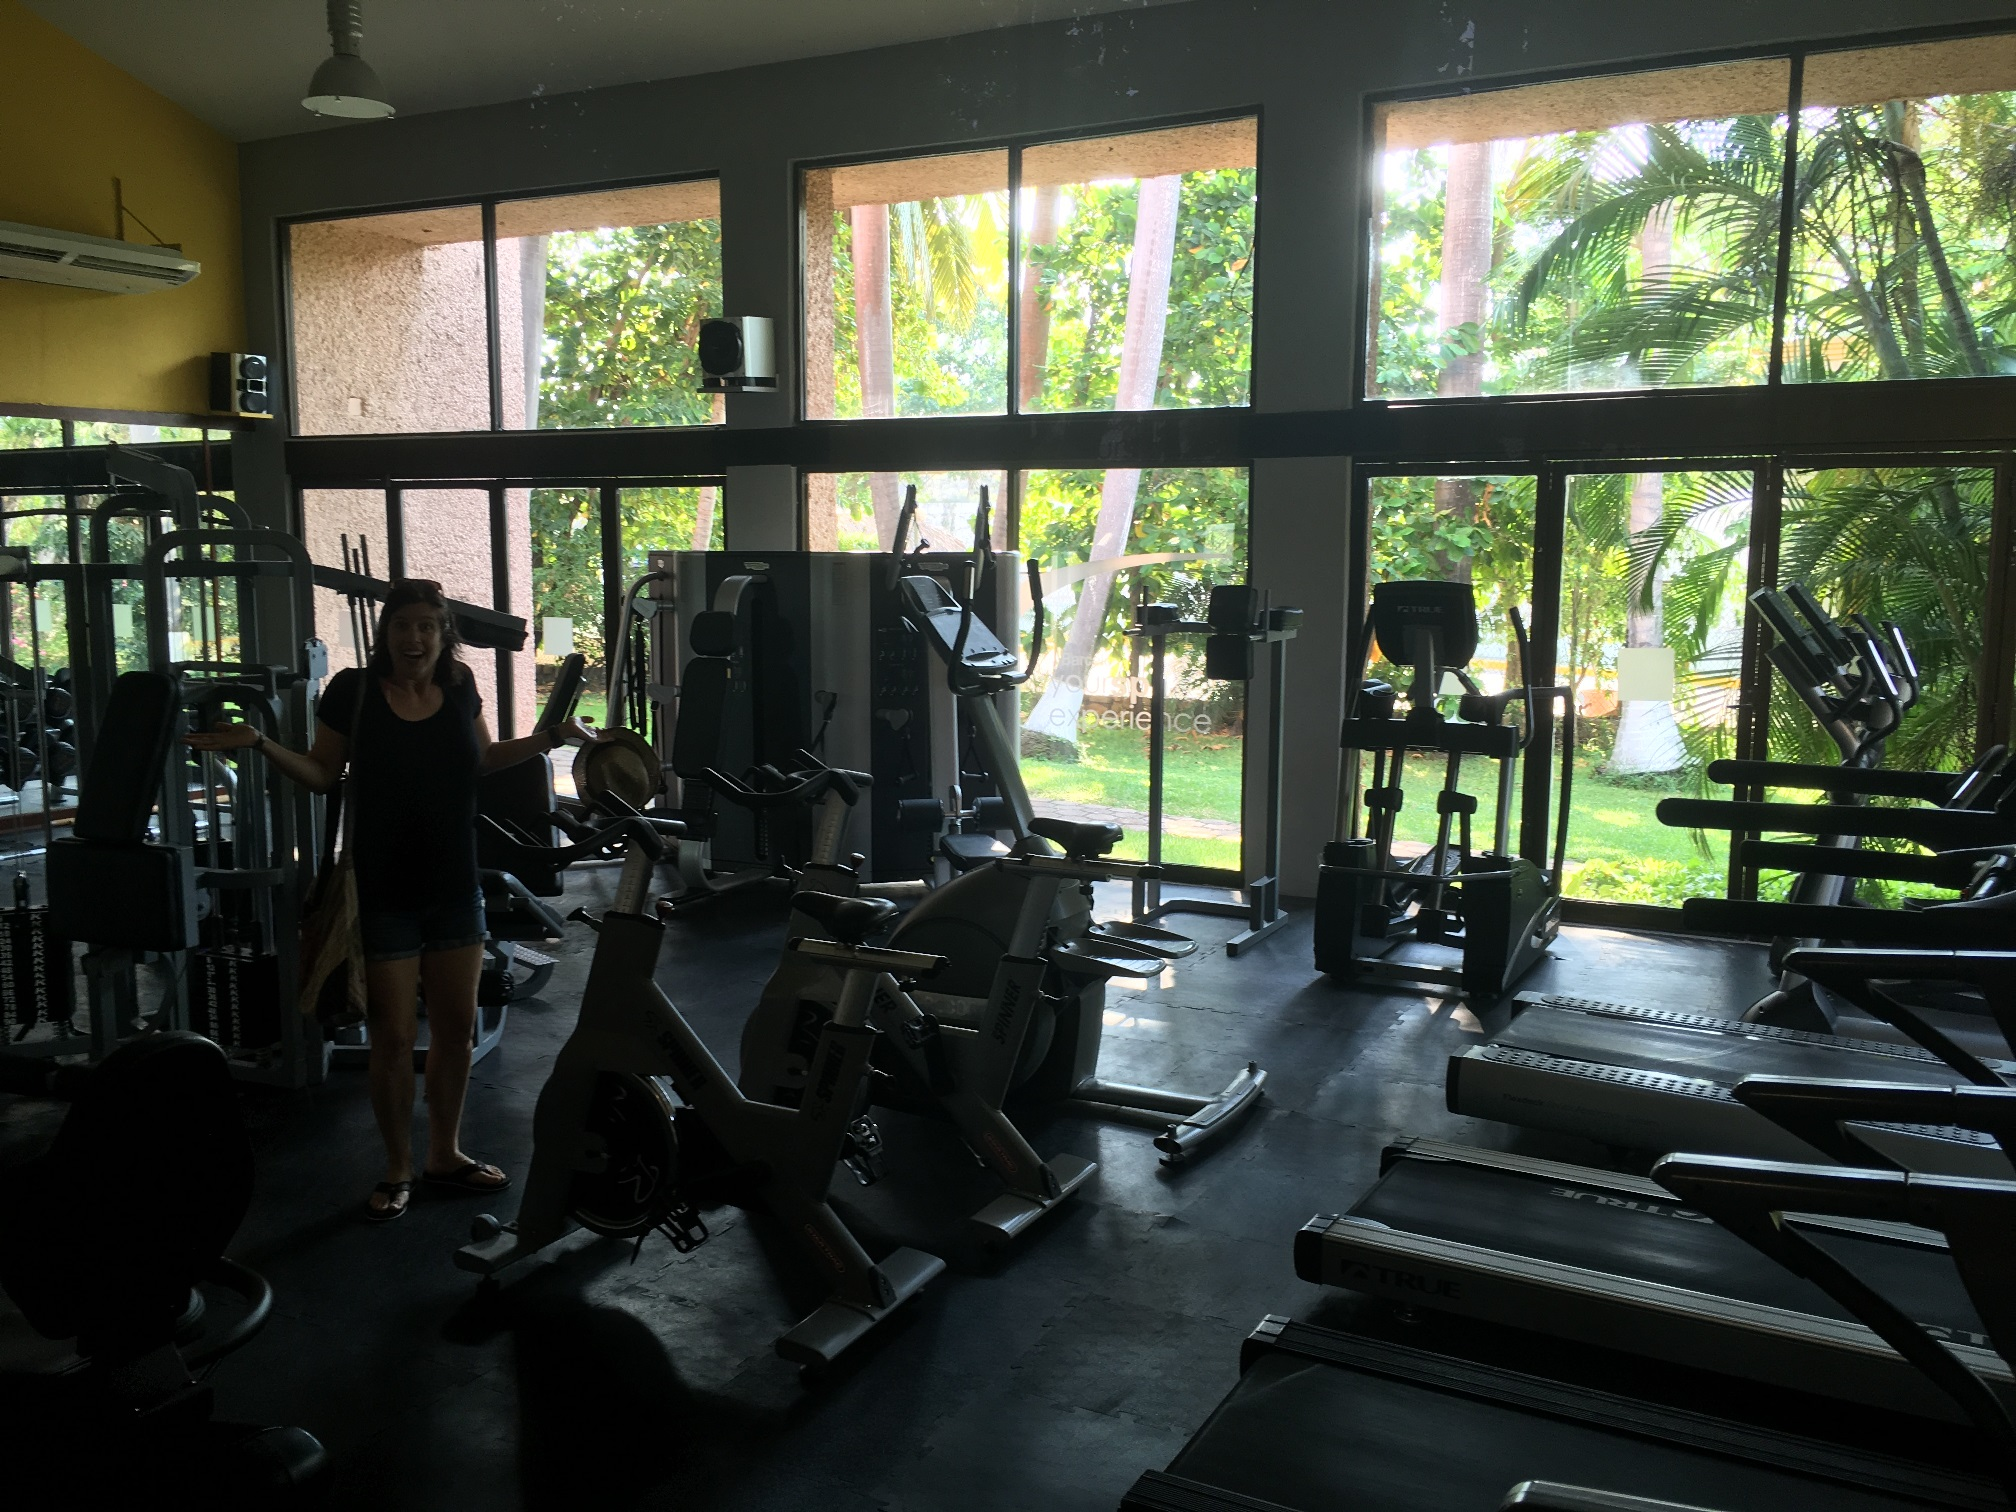 Where are all the exercise people?